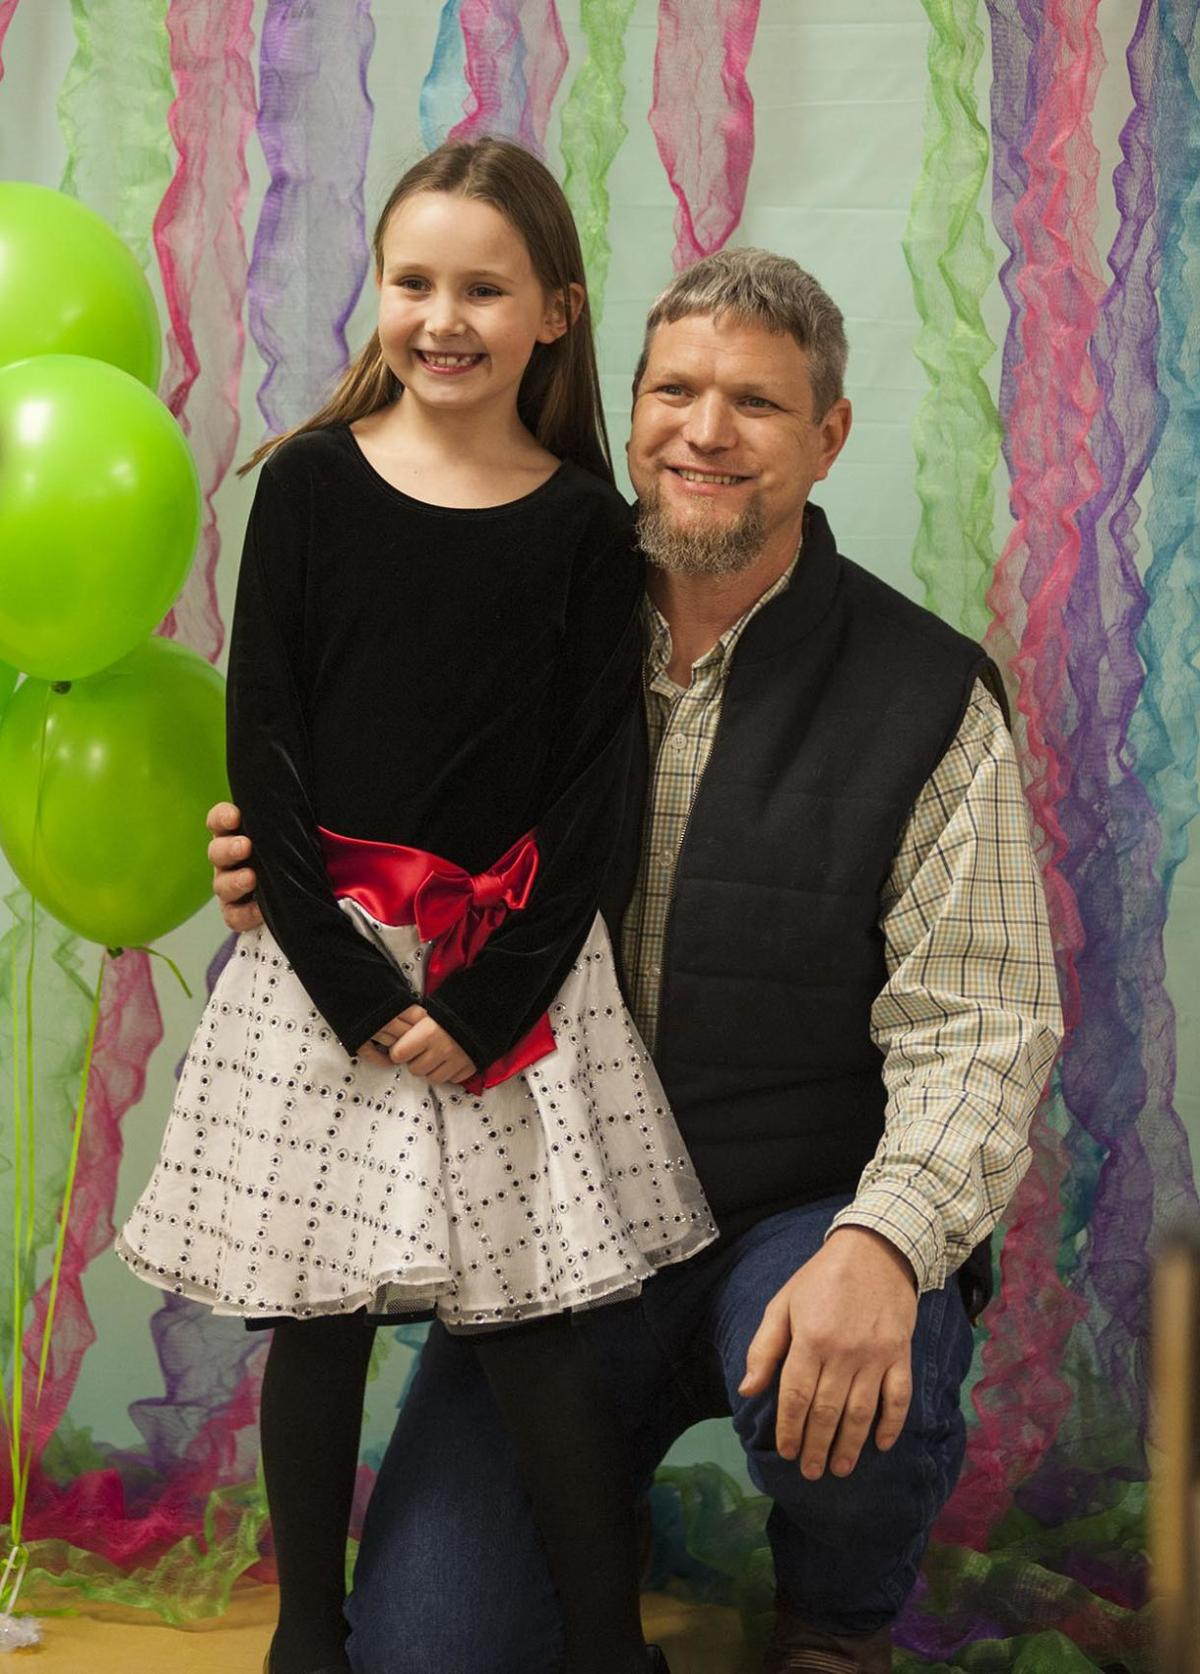 PC Father Daughter Dance 2018 - 1 tw.jpg